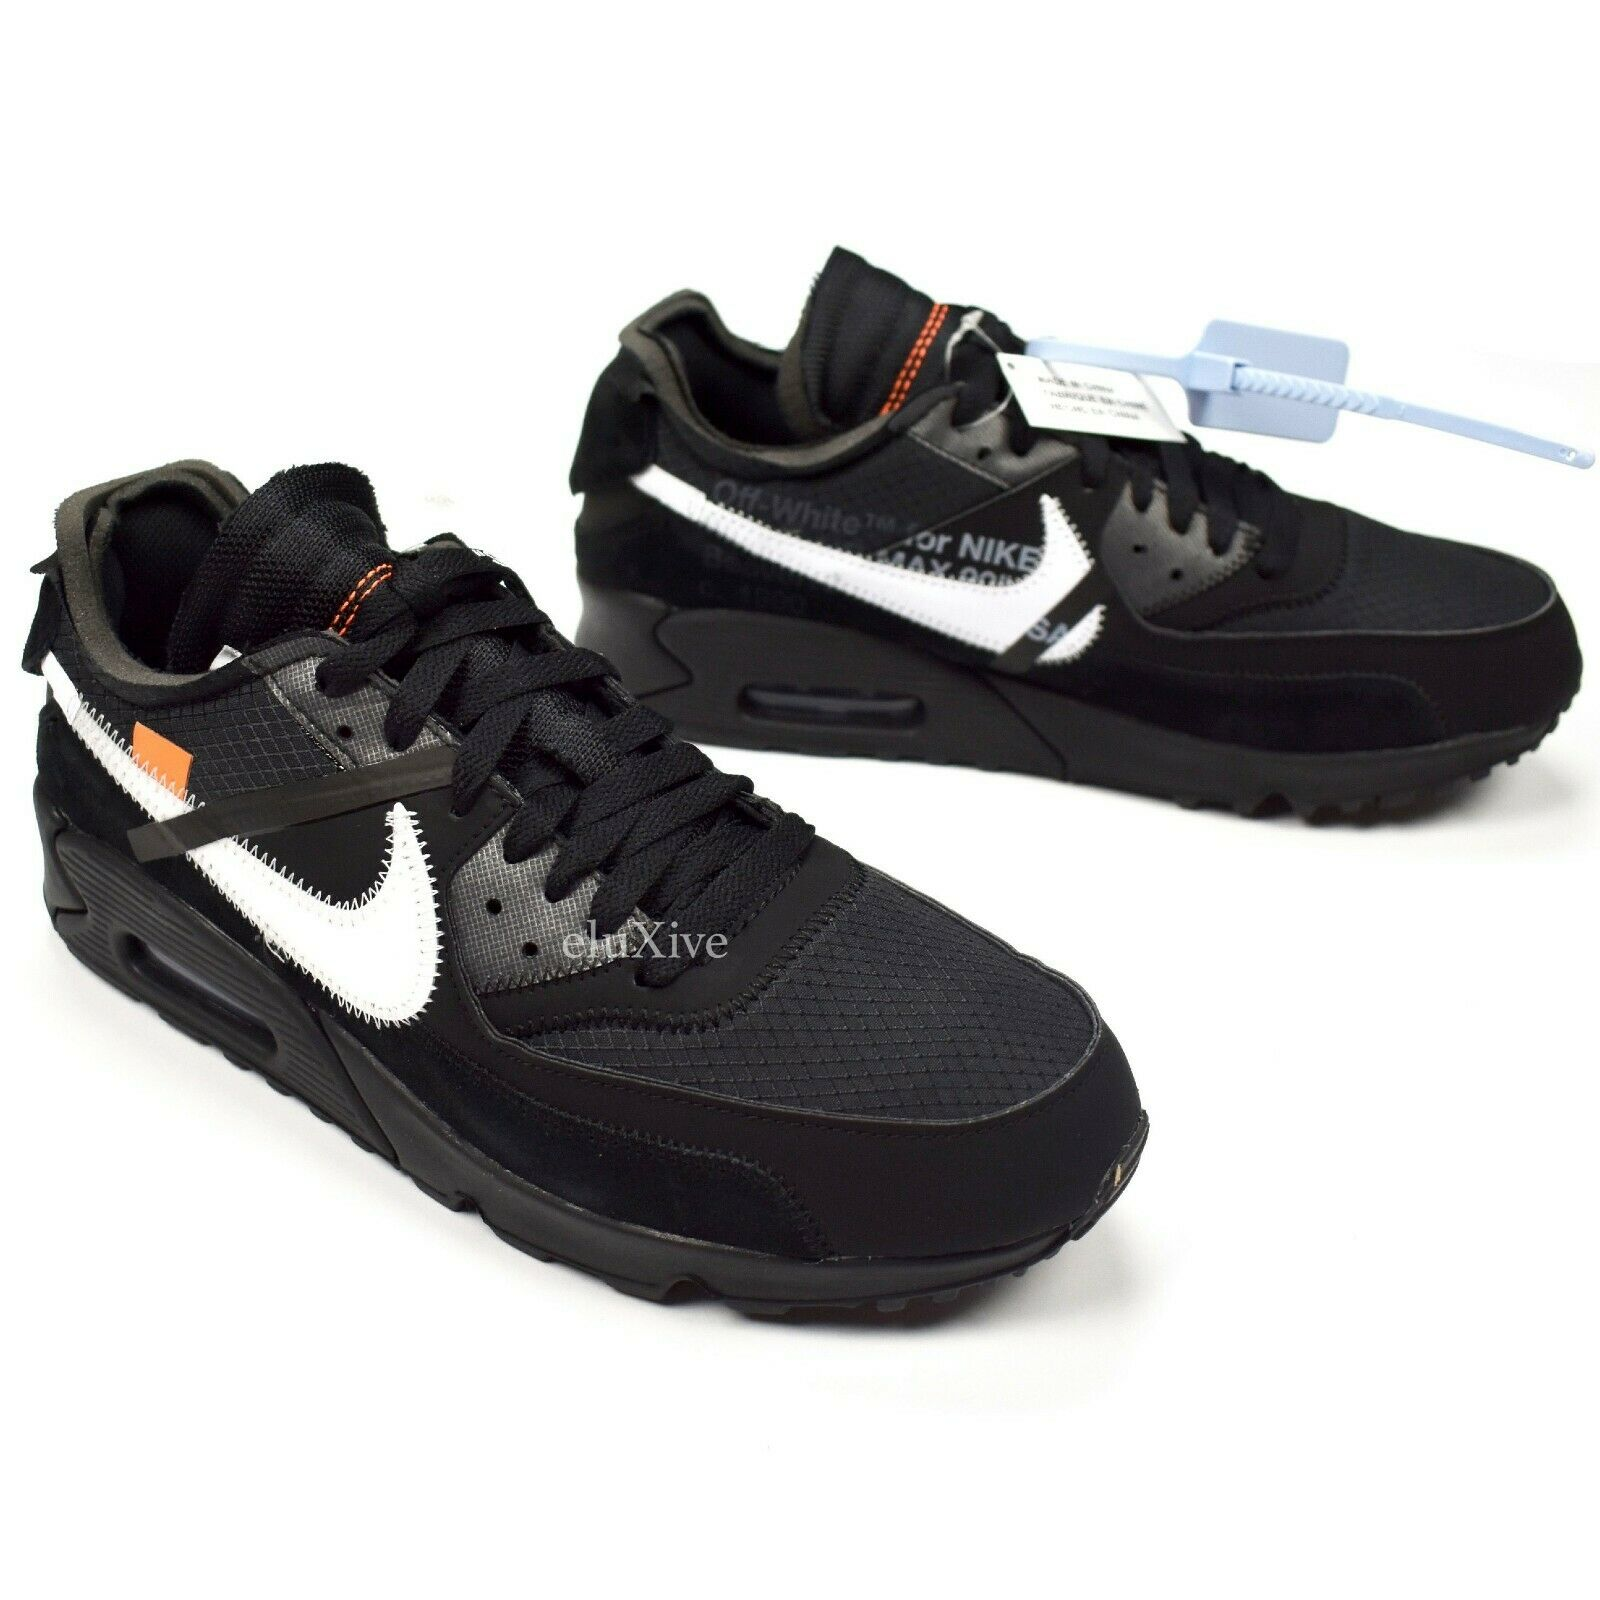 NWT Nike Off White Virgil Abloh Air Max 90 Black White Men's Sneakers AUTHENTIC